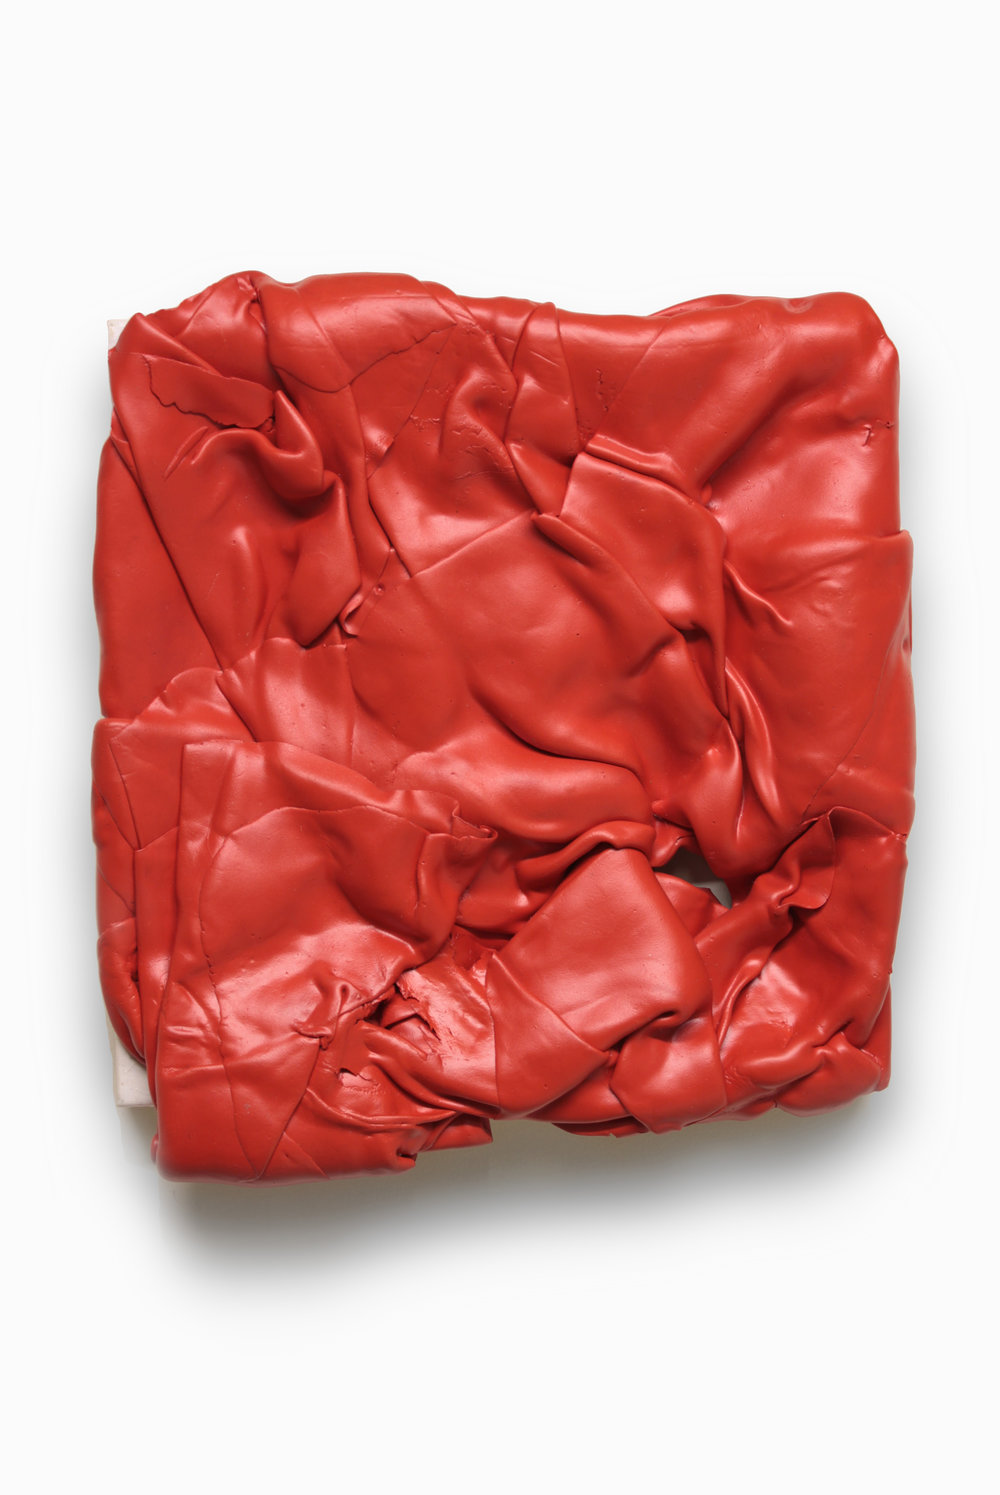 Untitled (Red)  , 2015  Acrylic on canvas  33 x 35 x 7,5 cm